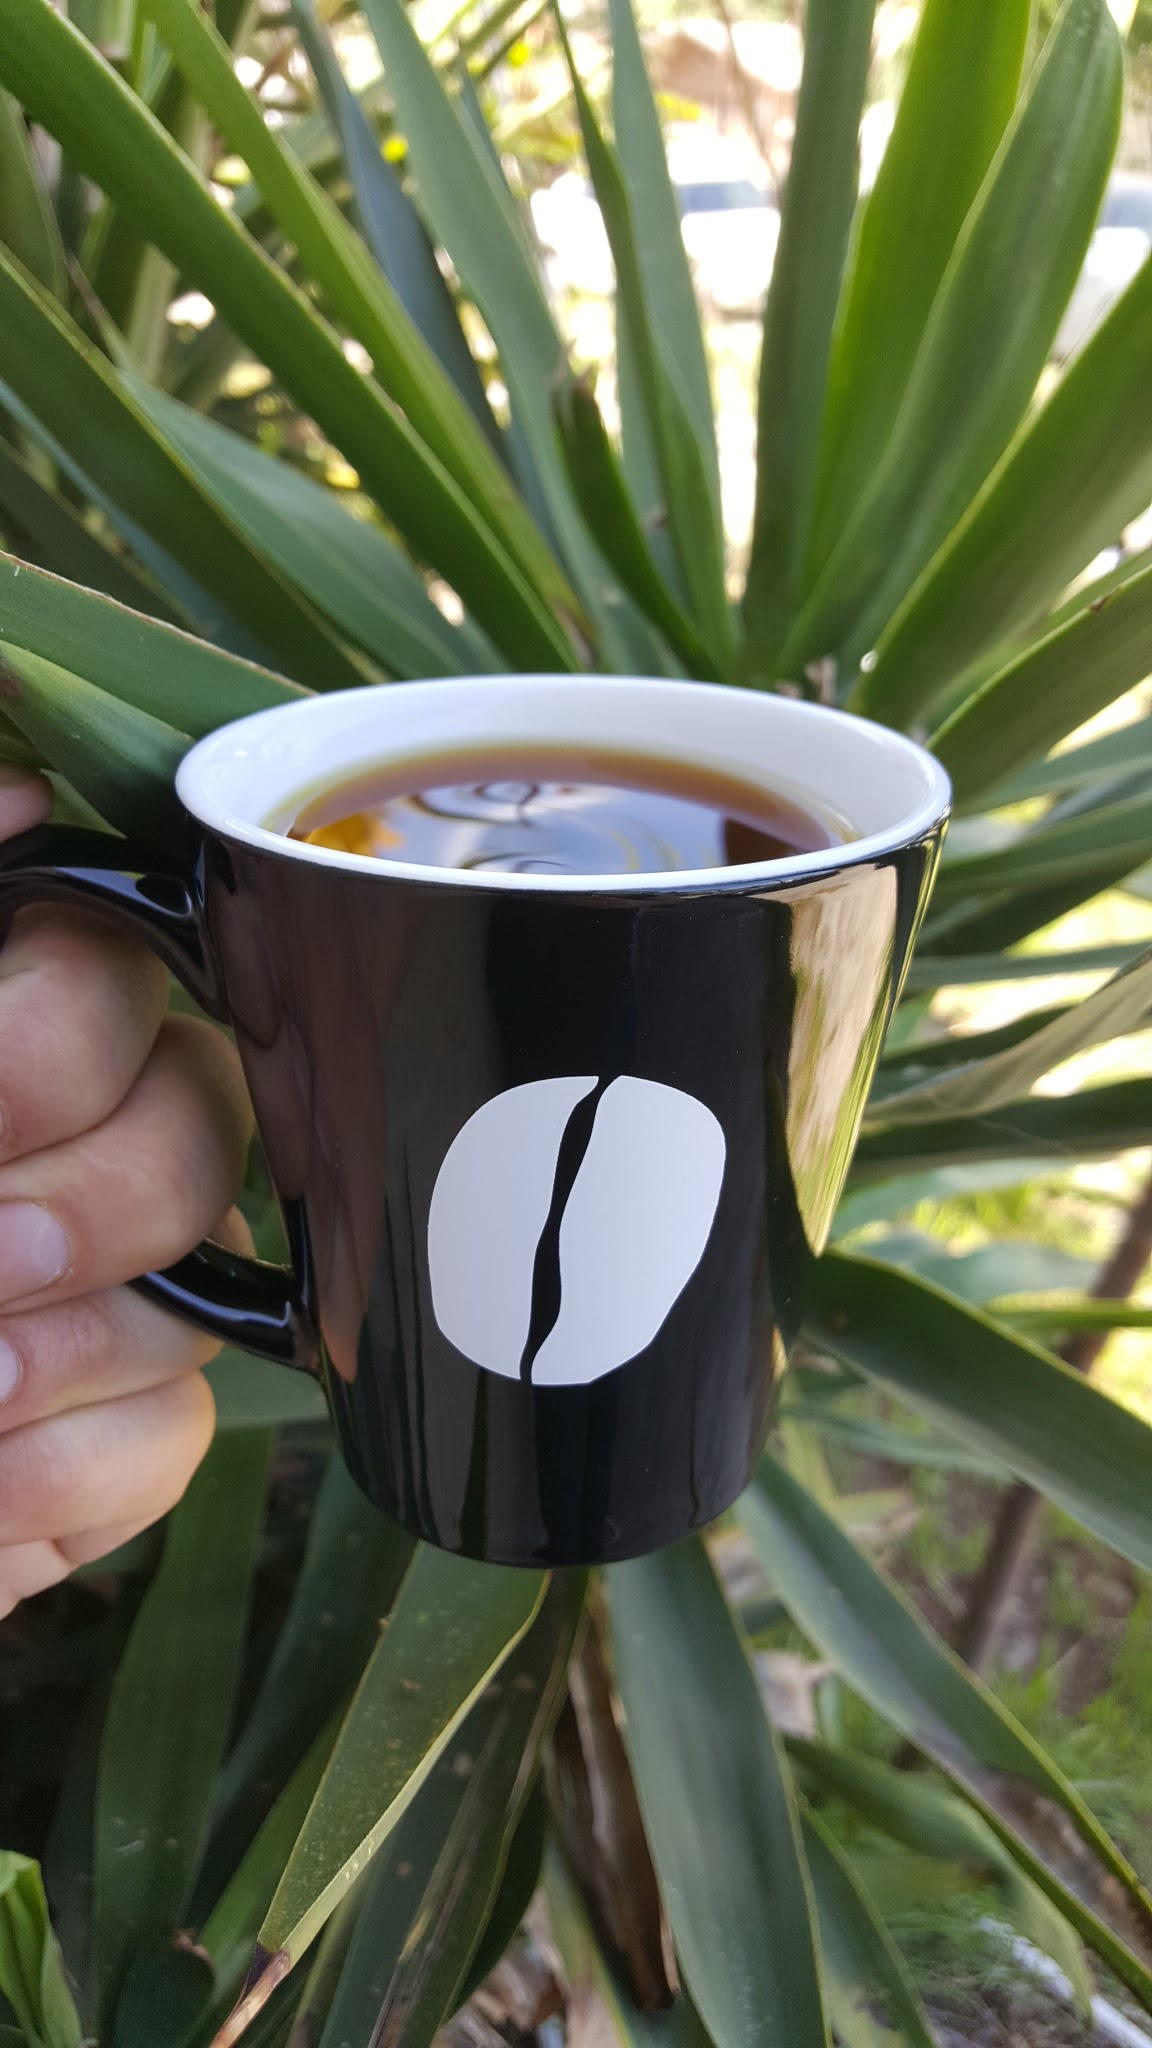 Americano   Espresso + Hot Water. For serious coffee enthusiasts.